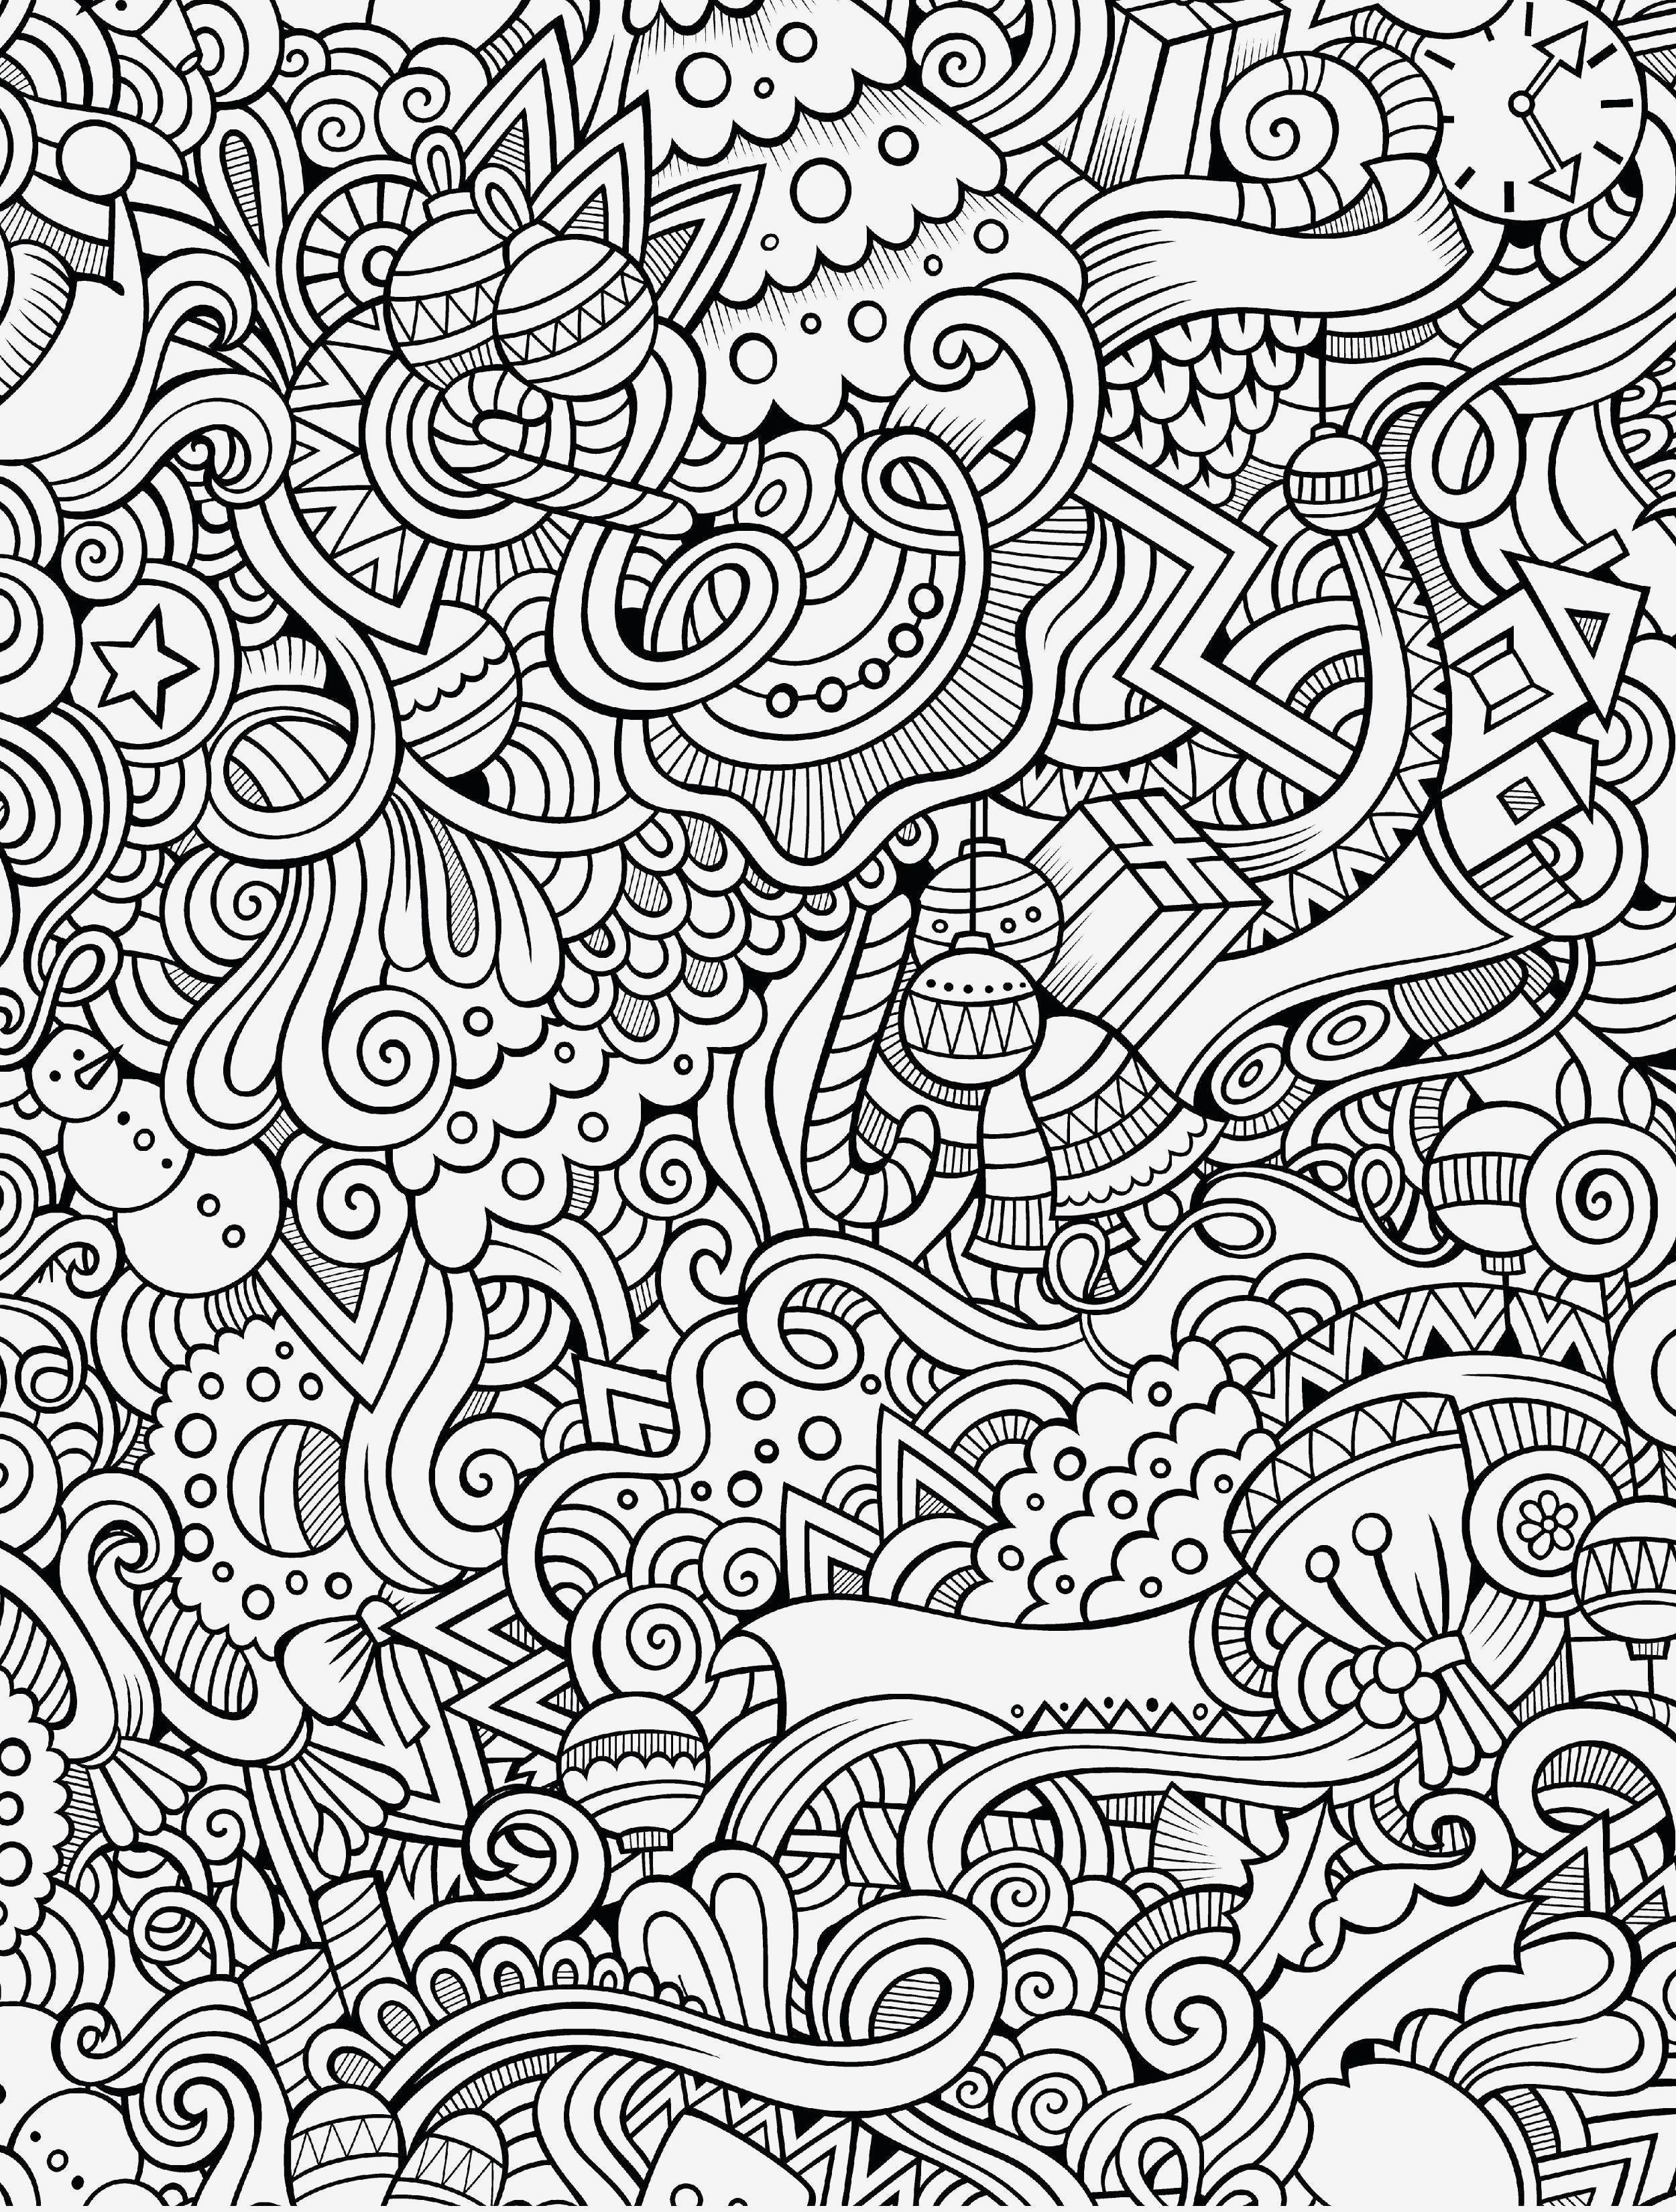 Christmas Vacation Coloring Pages With Download And Print For Free Cell Page COLORING PAGE